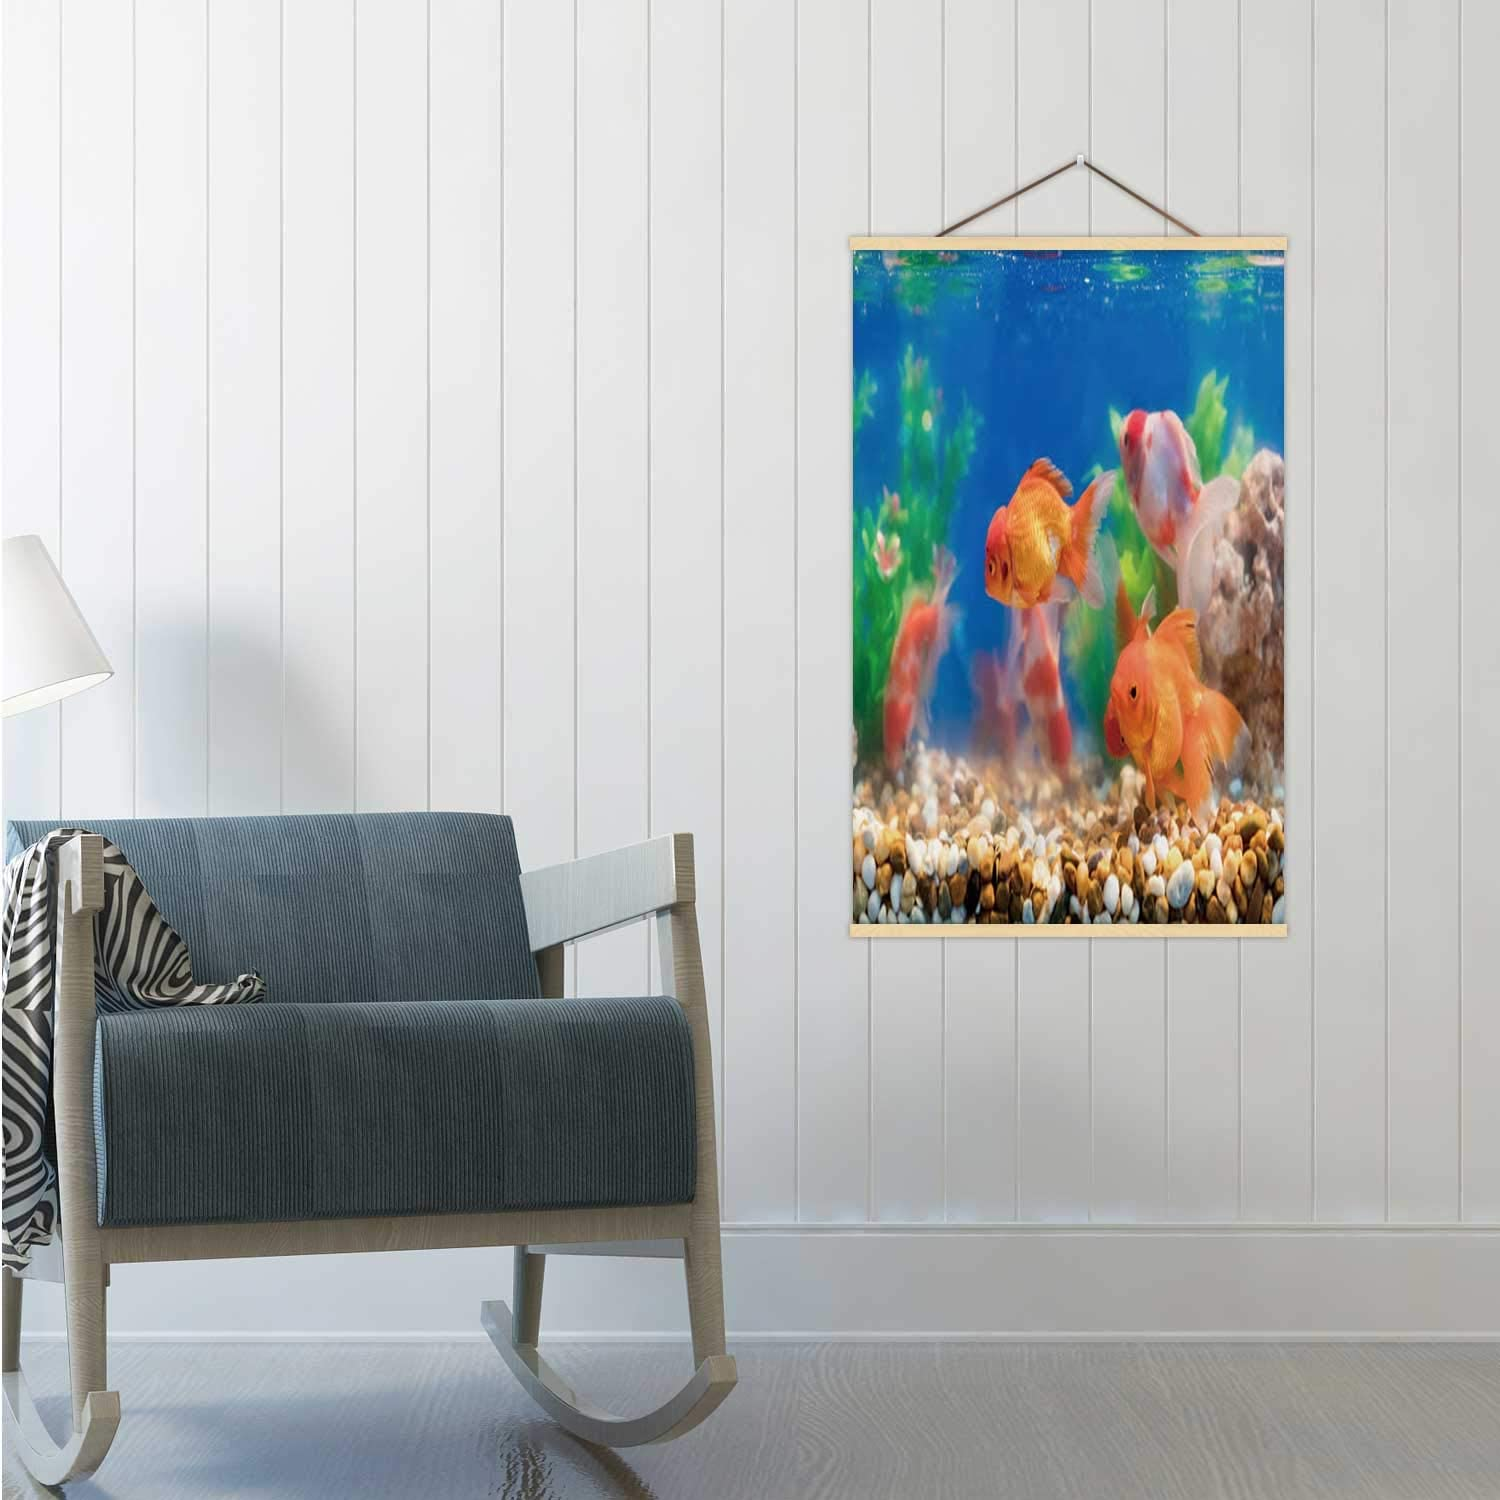 Amazon Com Goldfish In Freshwater Aquarium With Green Beautiful Planted Tropical Thailand Poster Board Fishbowl 16 19 24 Frams 24x35in Wxh Posters Prints